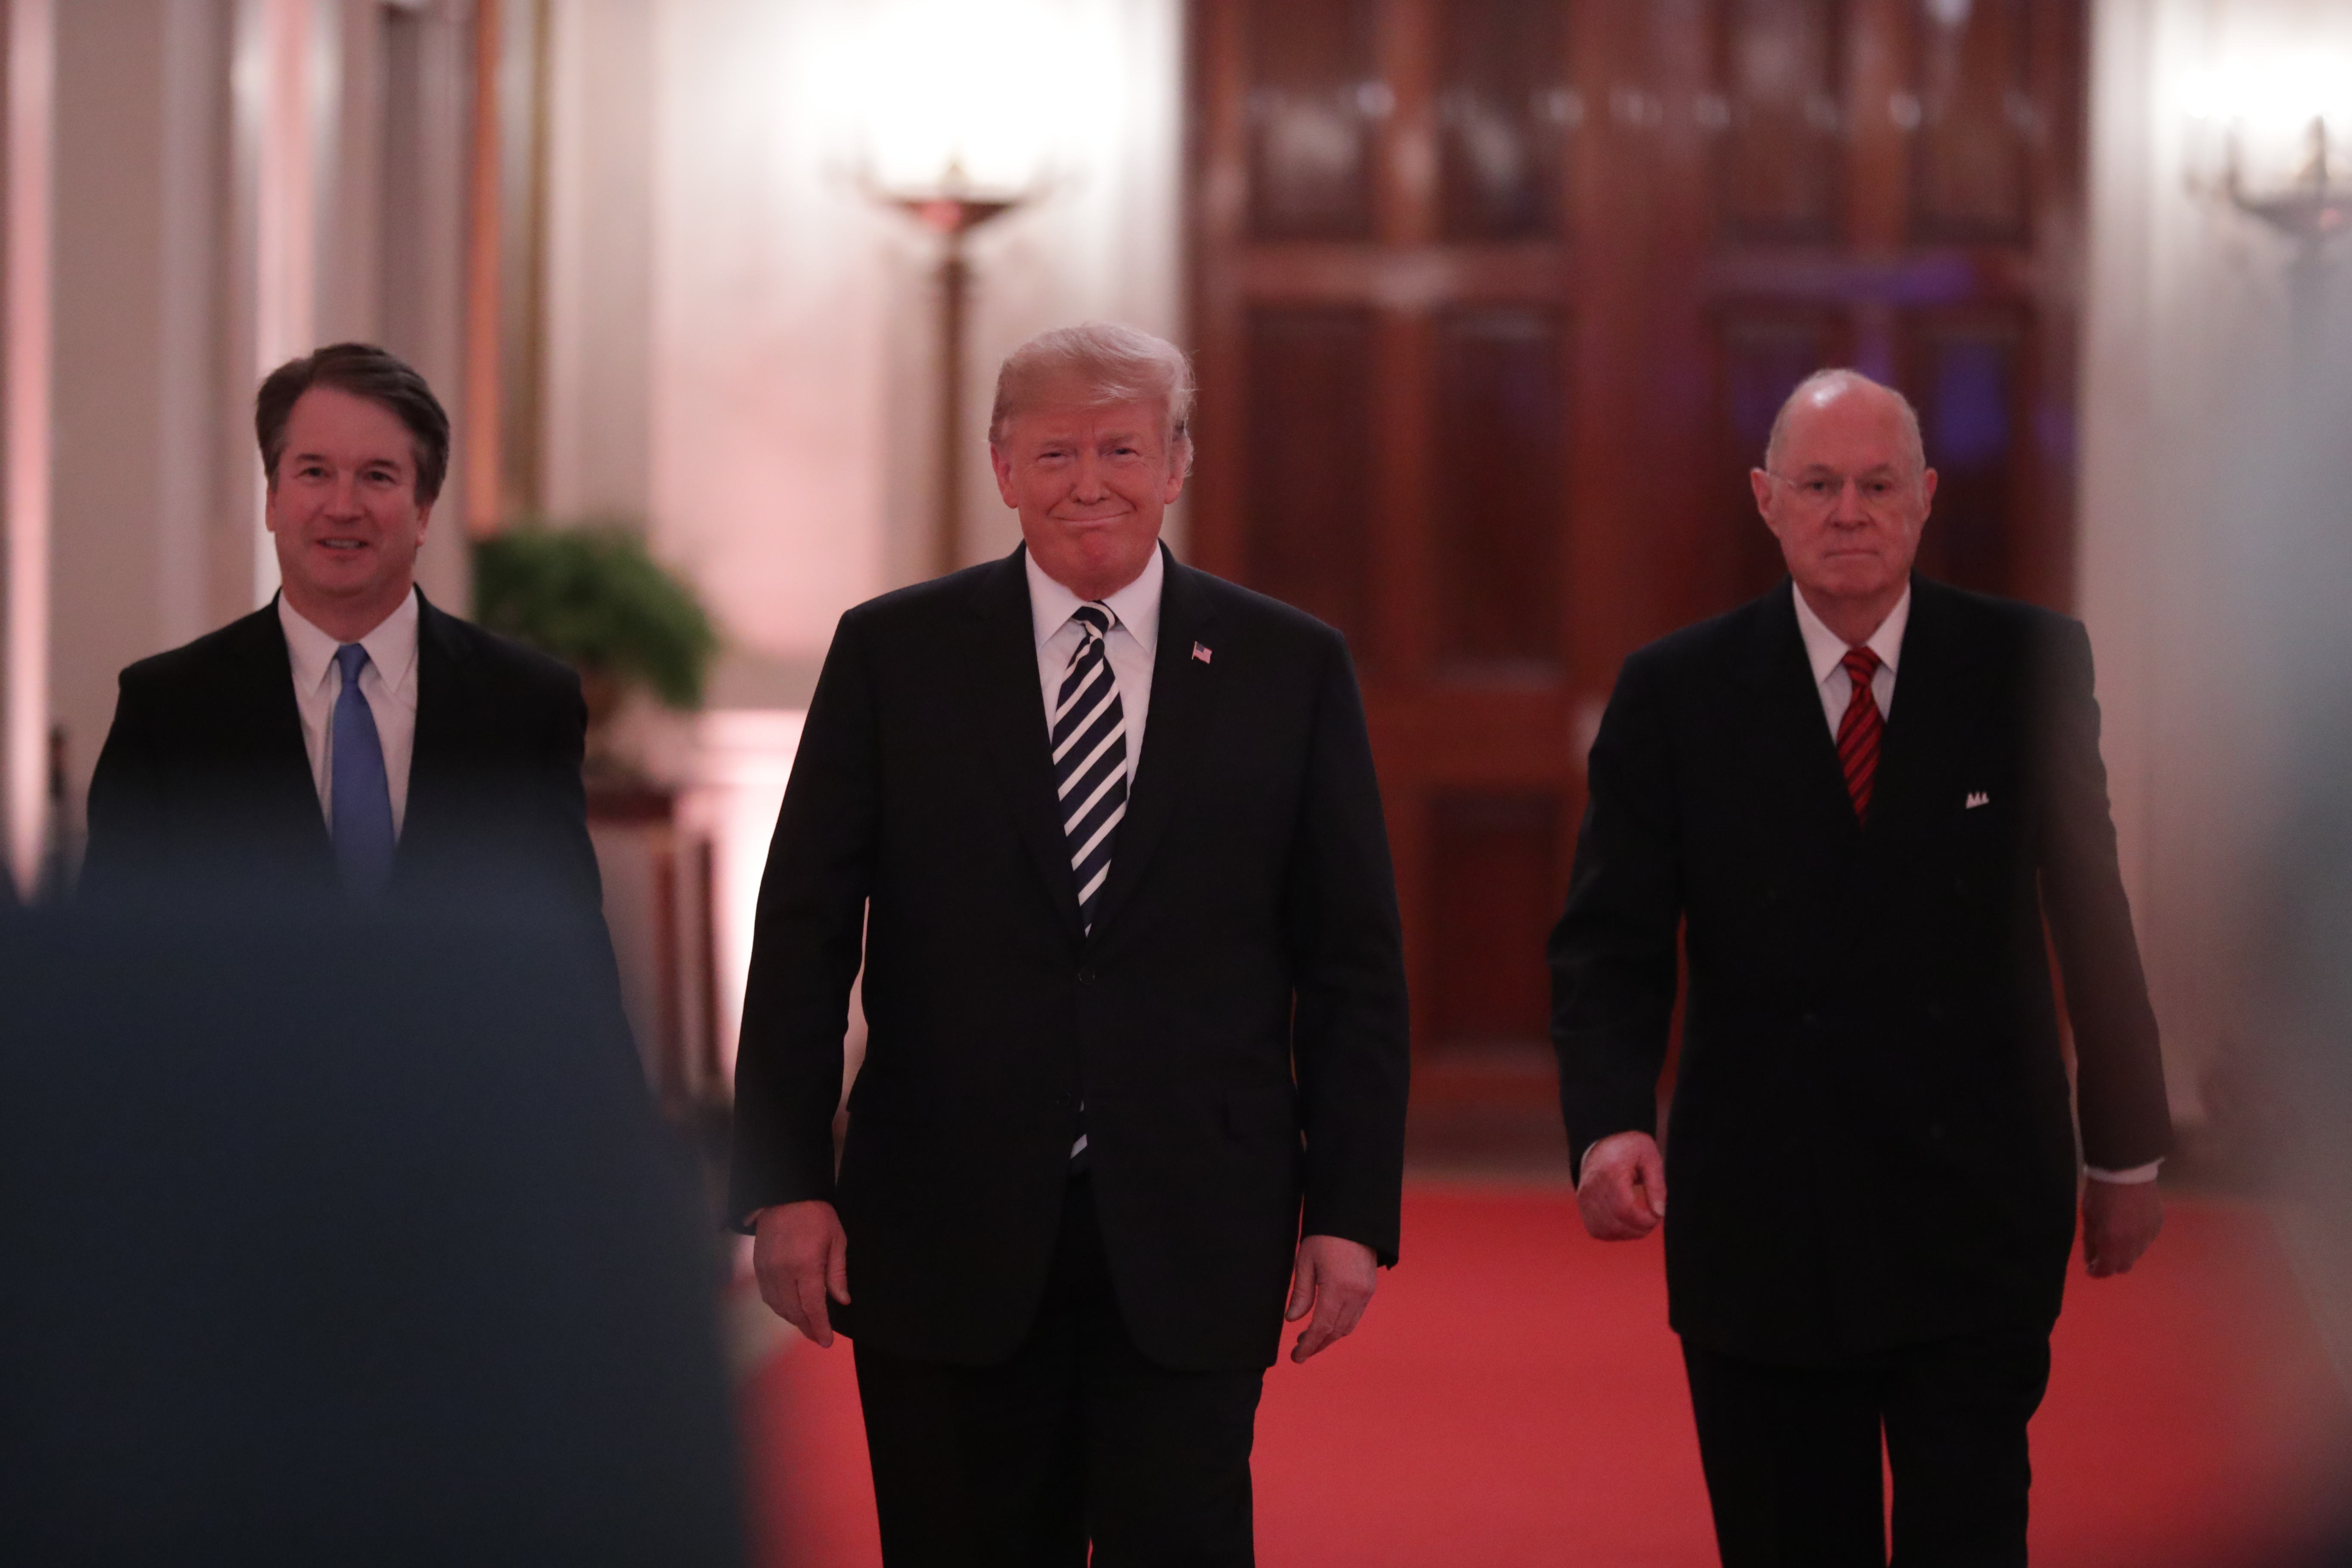 (L-R) Justice Brett Kavanaugh, President Donald Trump and retired Justice Anthony Kennedy arrive in the East Room of the White House on October 08, 2018. (Chip Somodevilla/Getty Images)